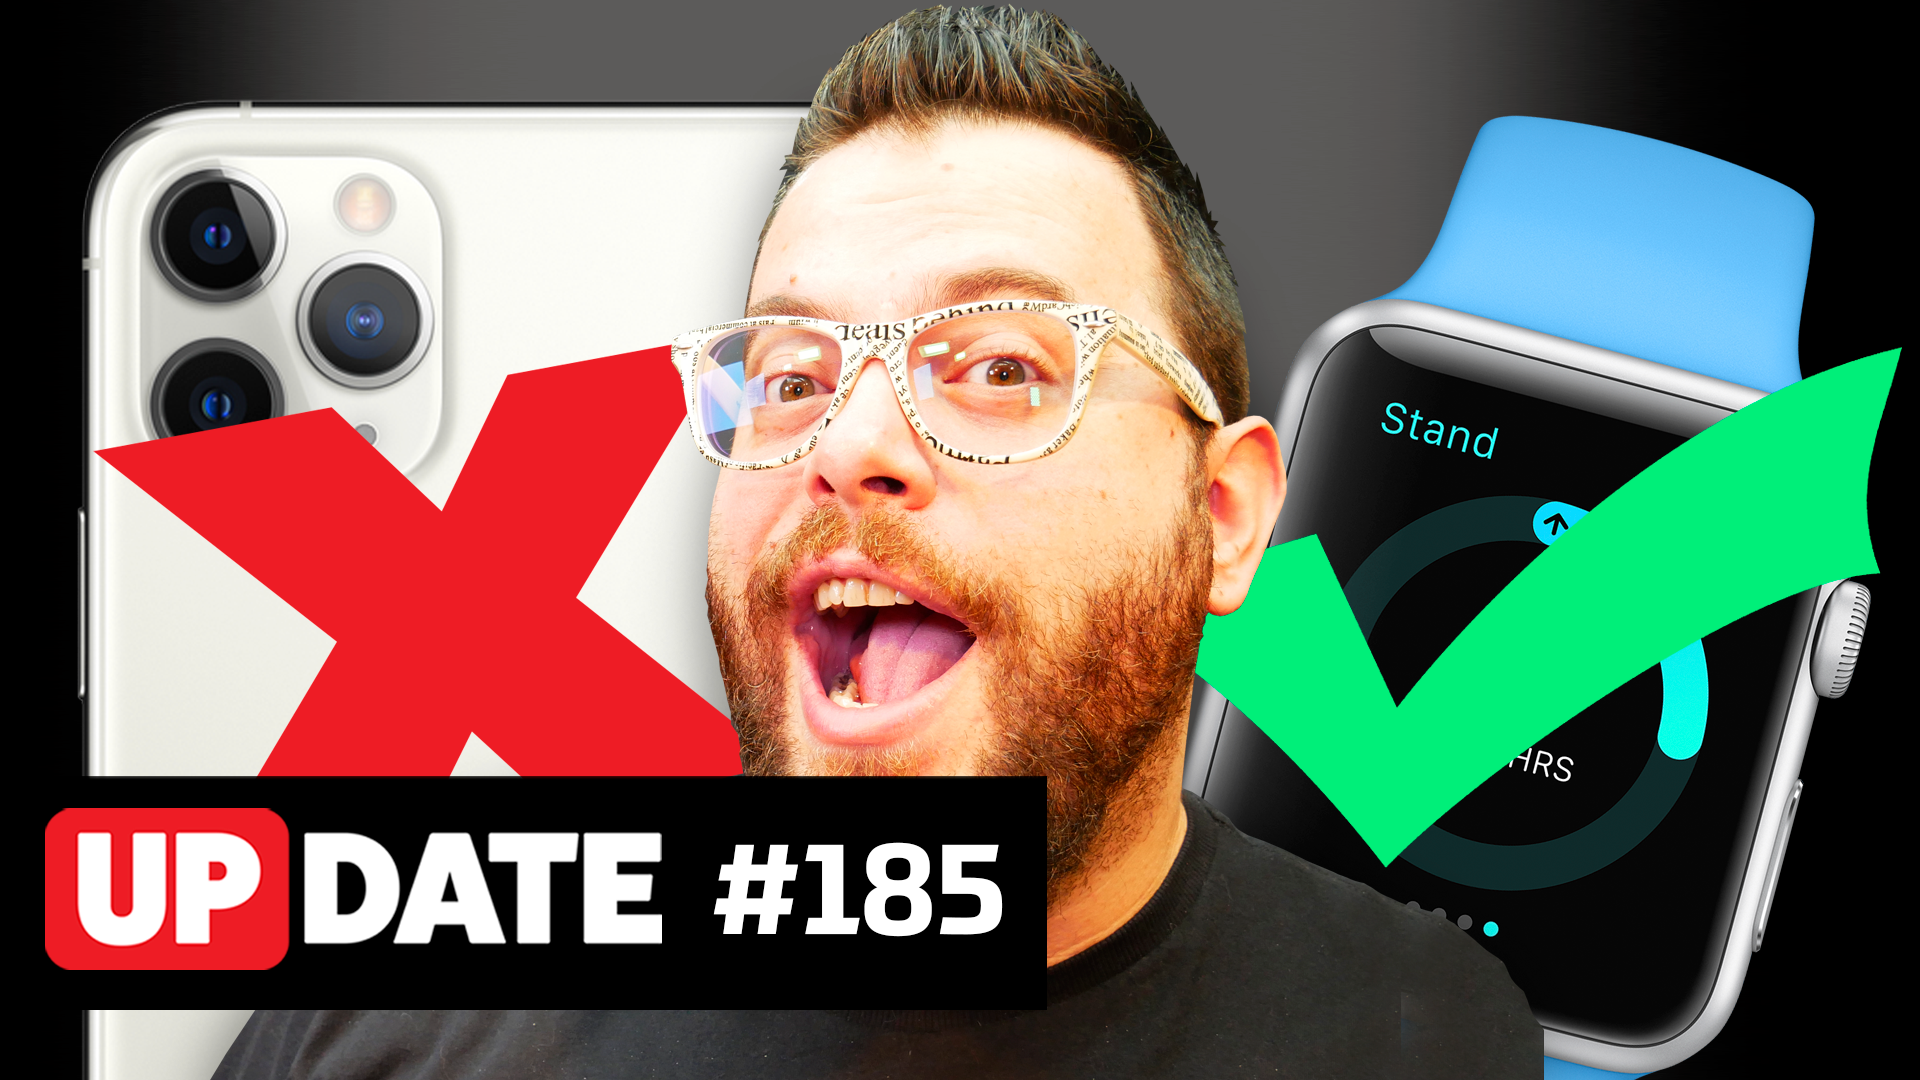 Update 185 – Erros e acertos da Apple